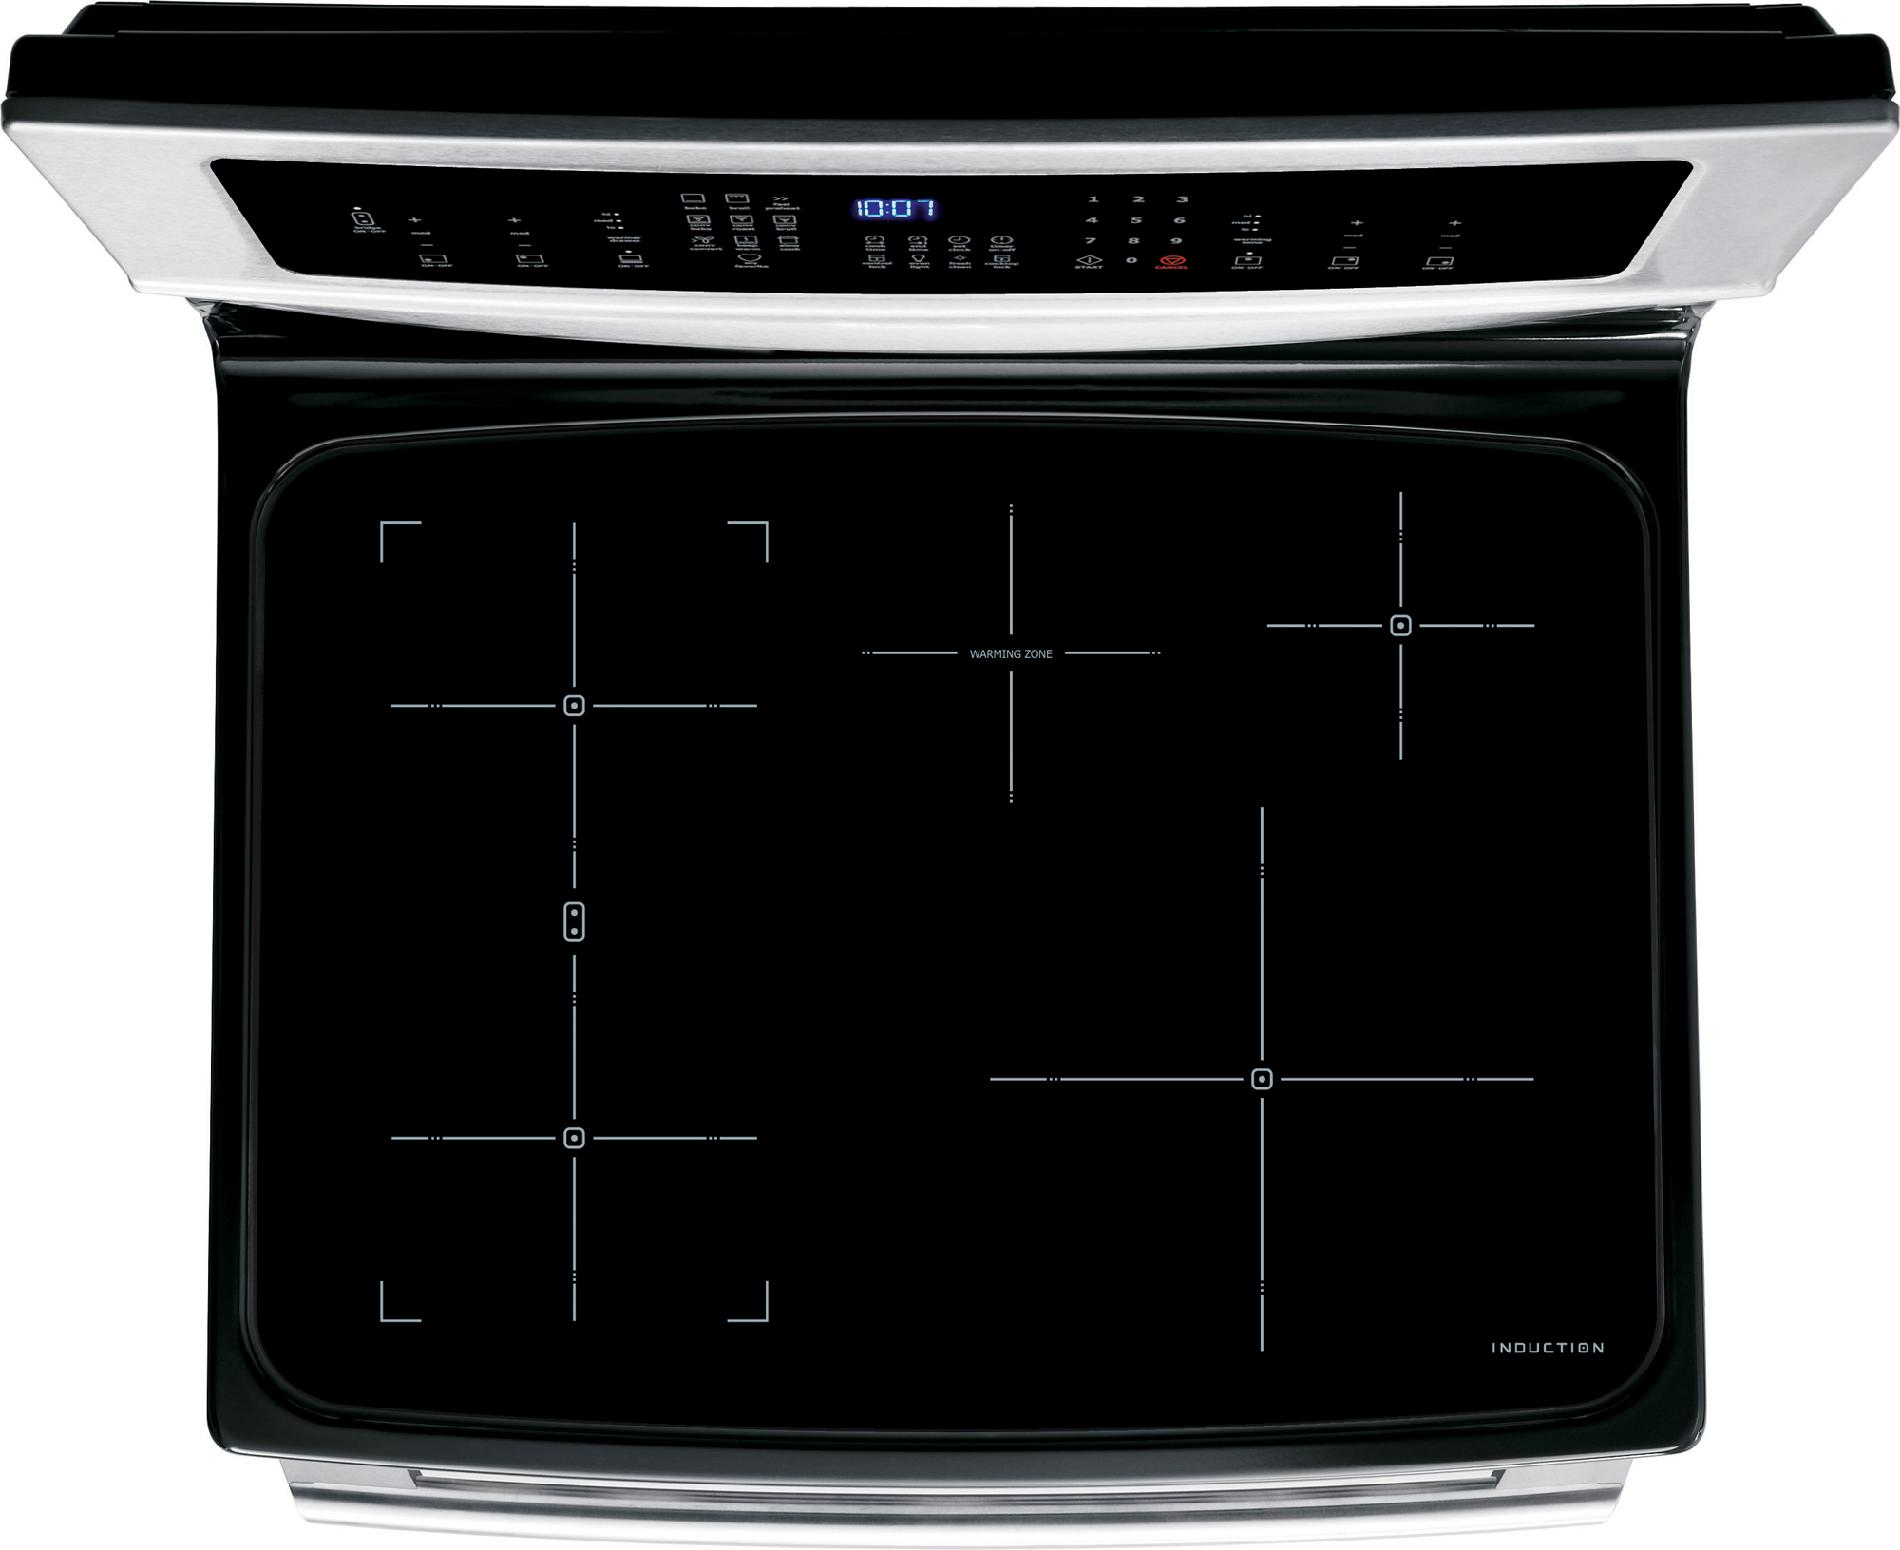 Electrolux 6.0 cu. ft. Electric Range w/ Induction Cooktop and IQ-Touch™ Controls - Stainless Steel